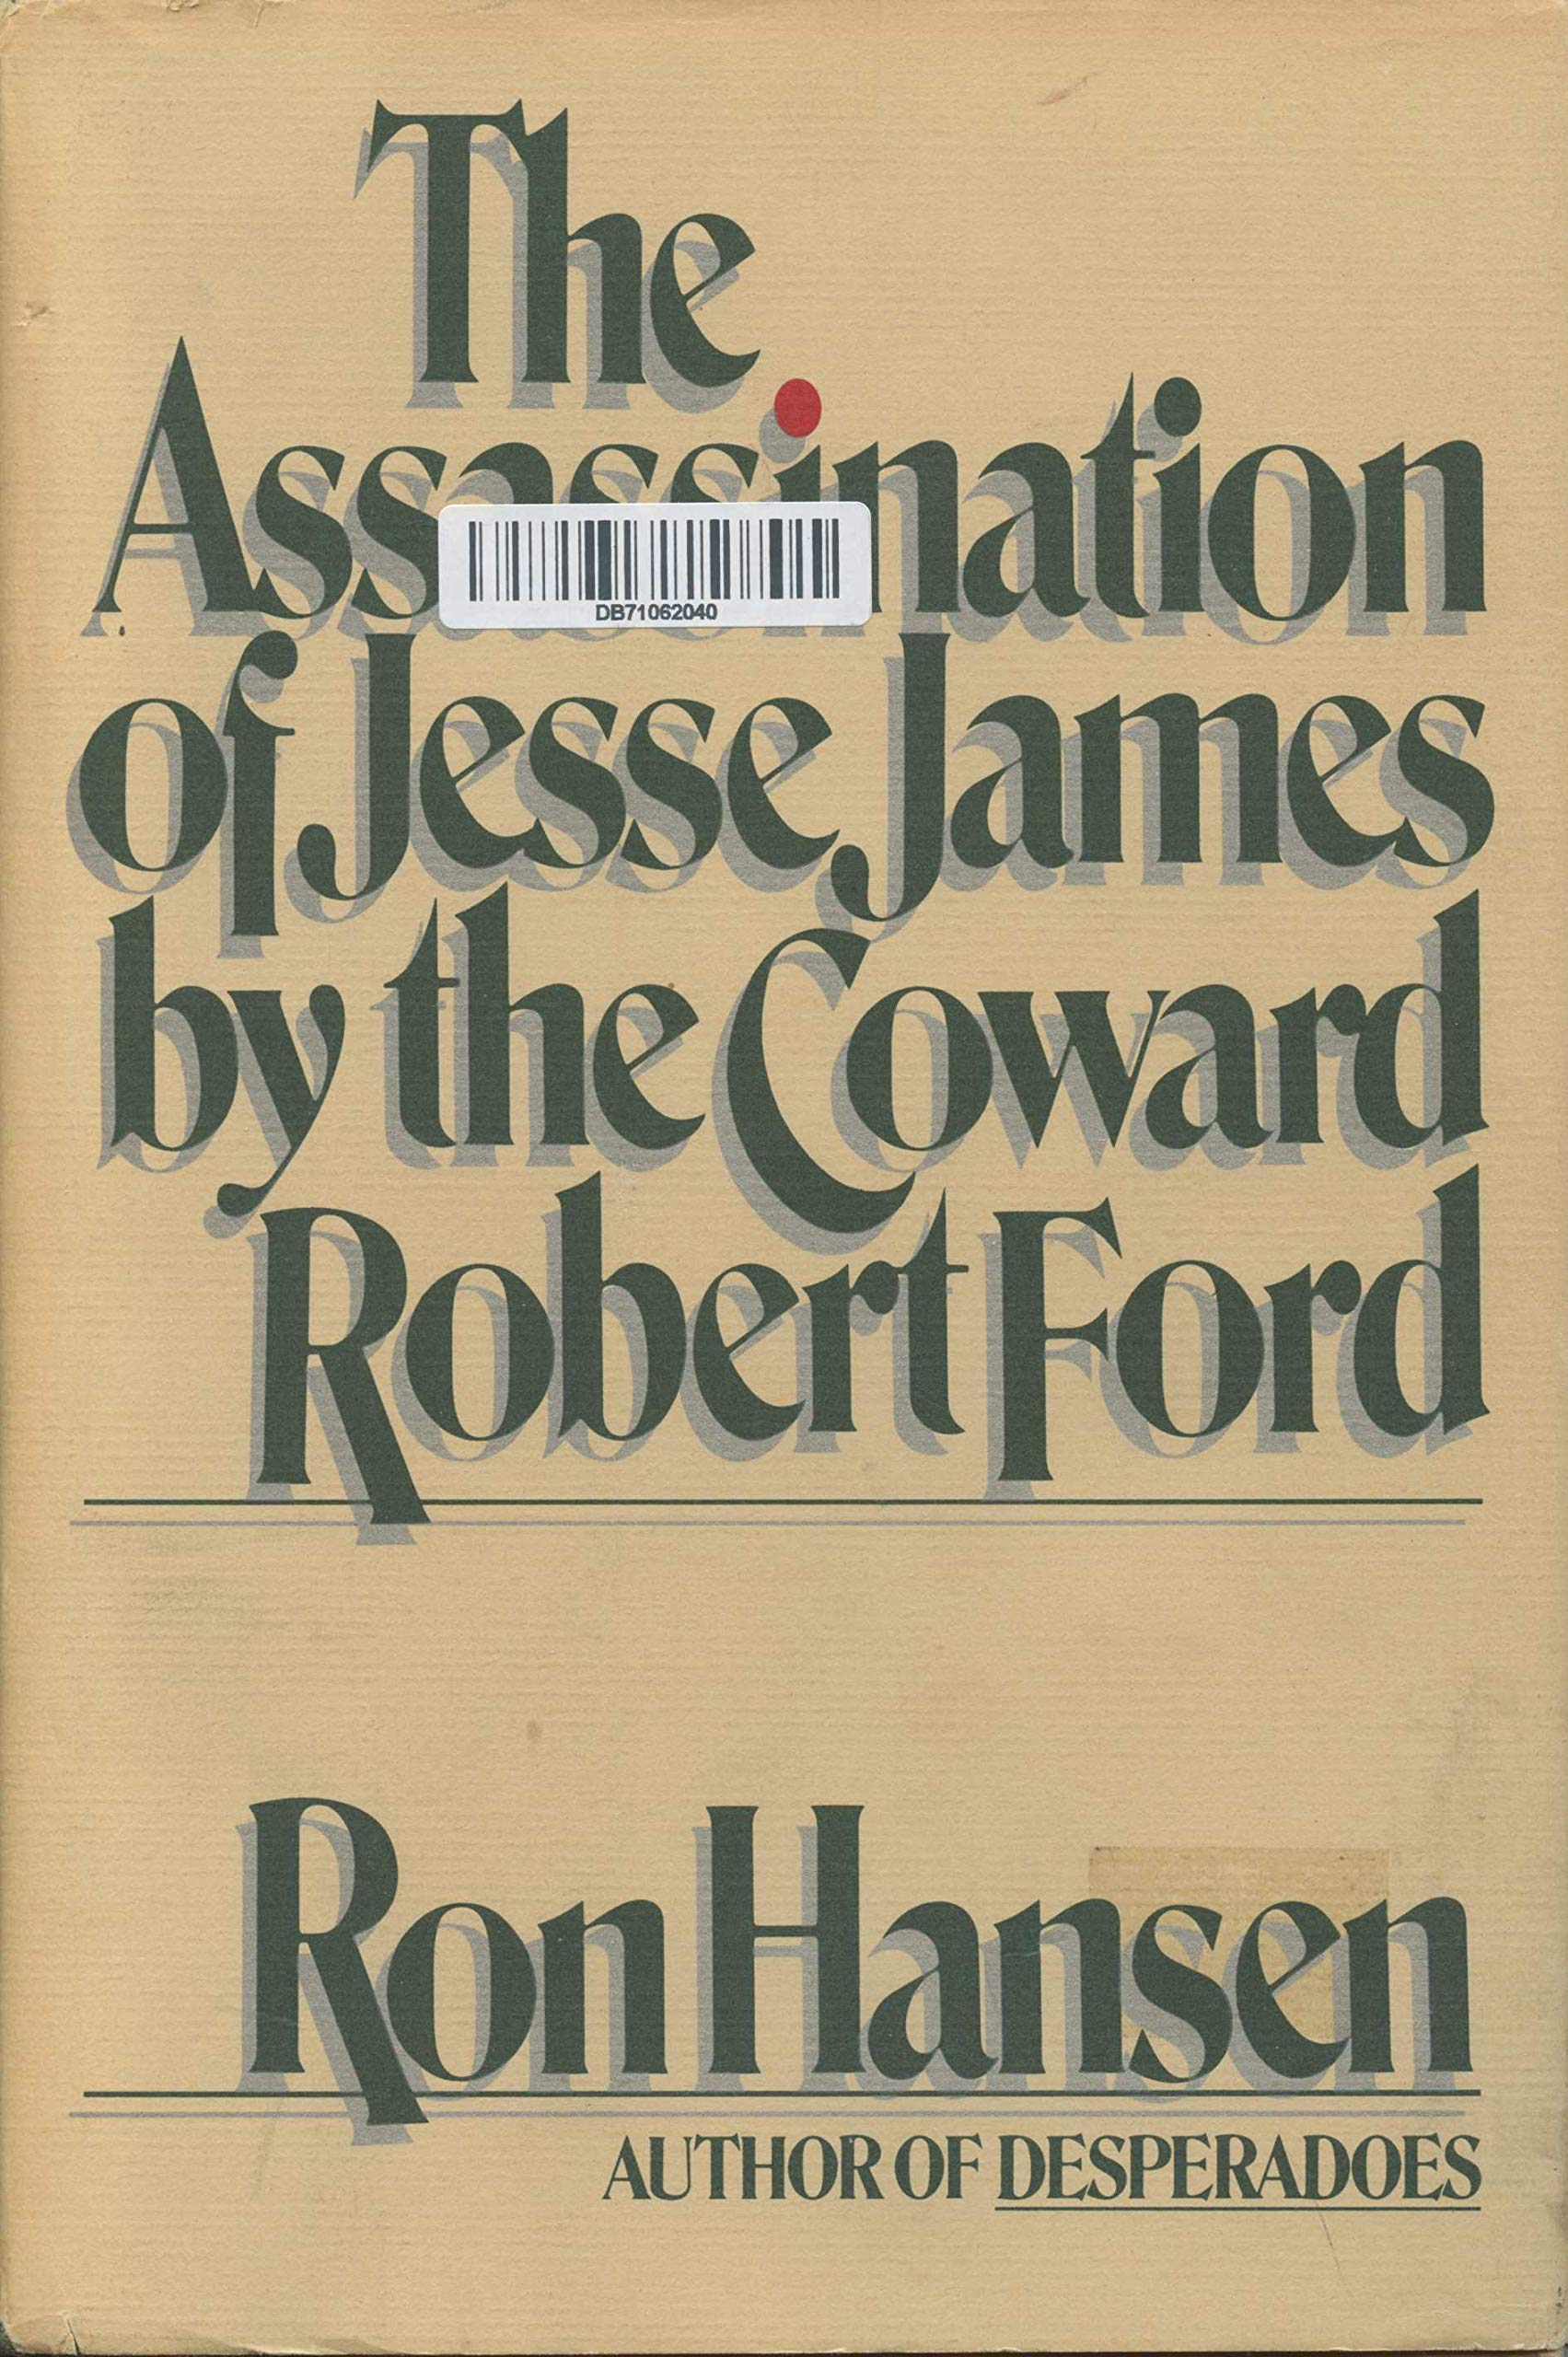 The Assassination of Jesse James by the Coward, Robert Ford ...